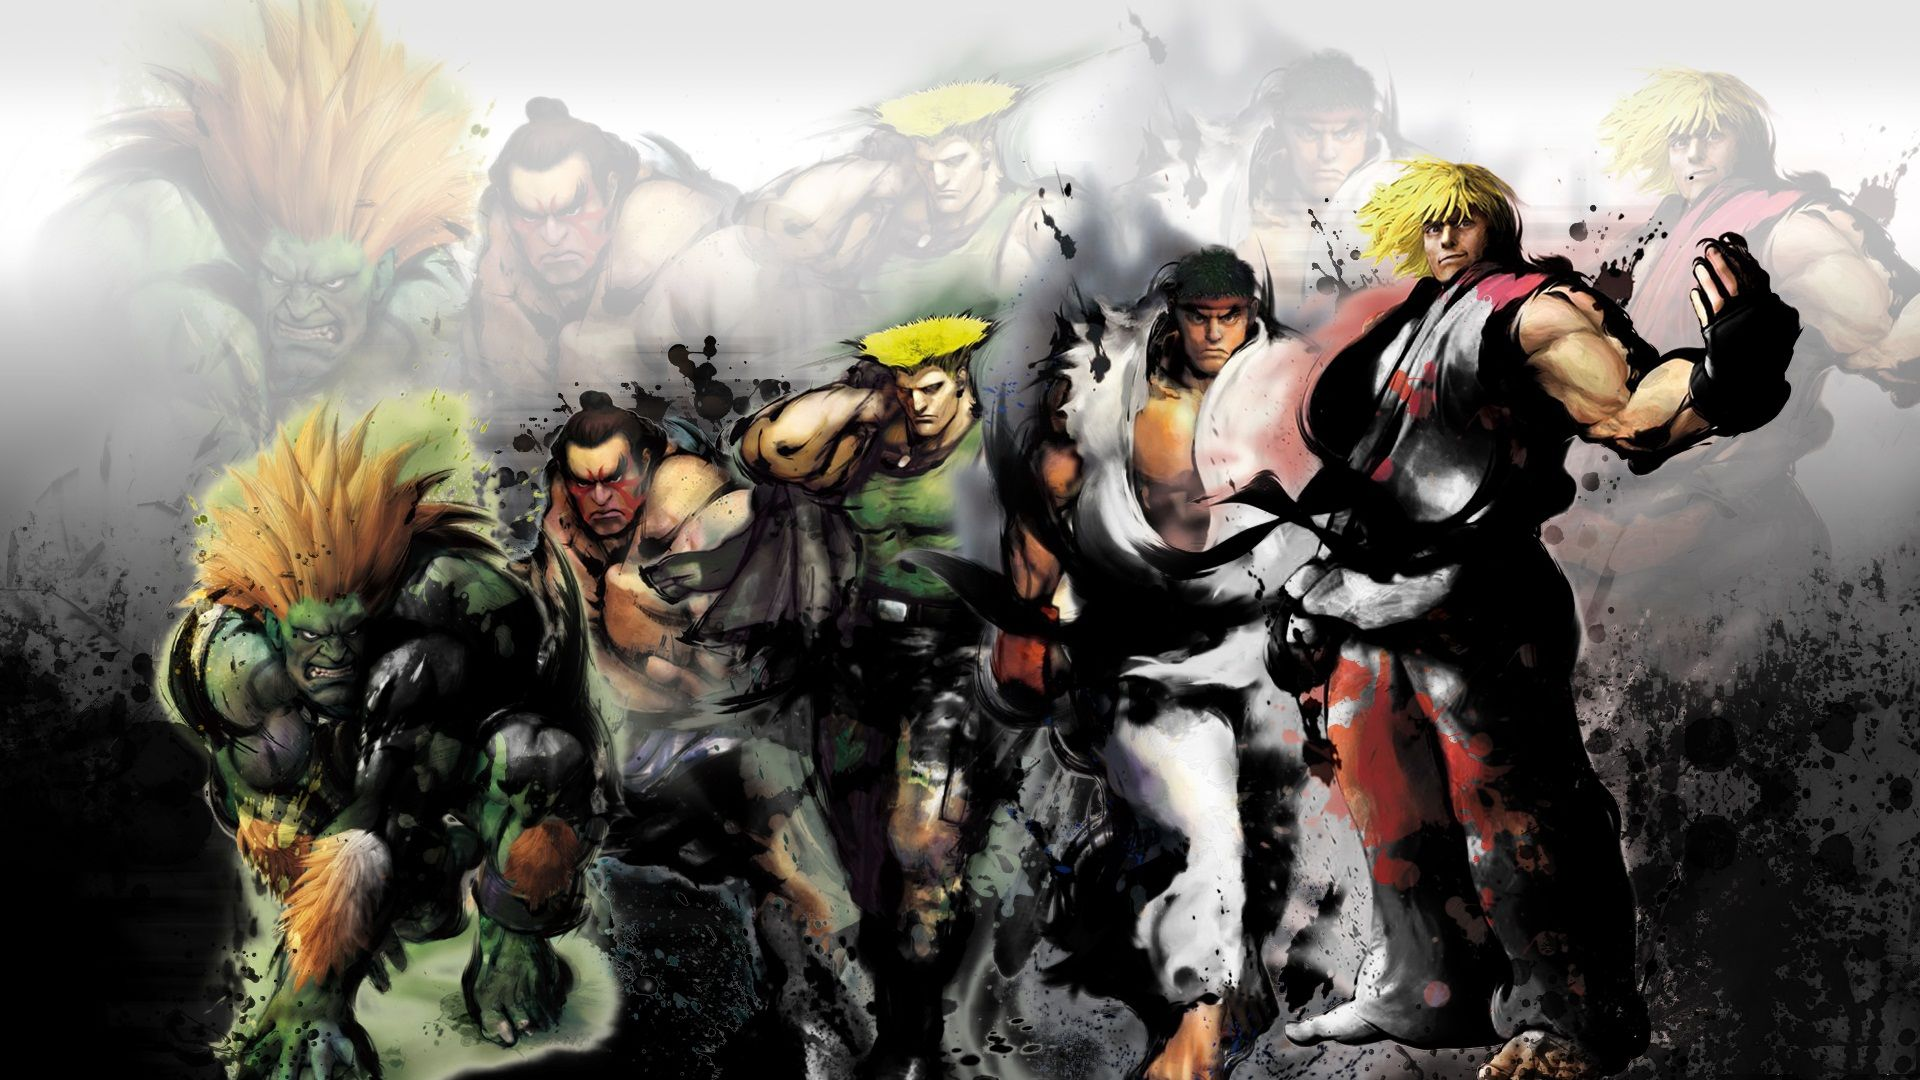 Street Fighter 4 Wallpapers: Anime Street Fighter Wallpapers